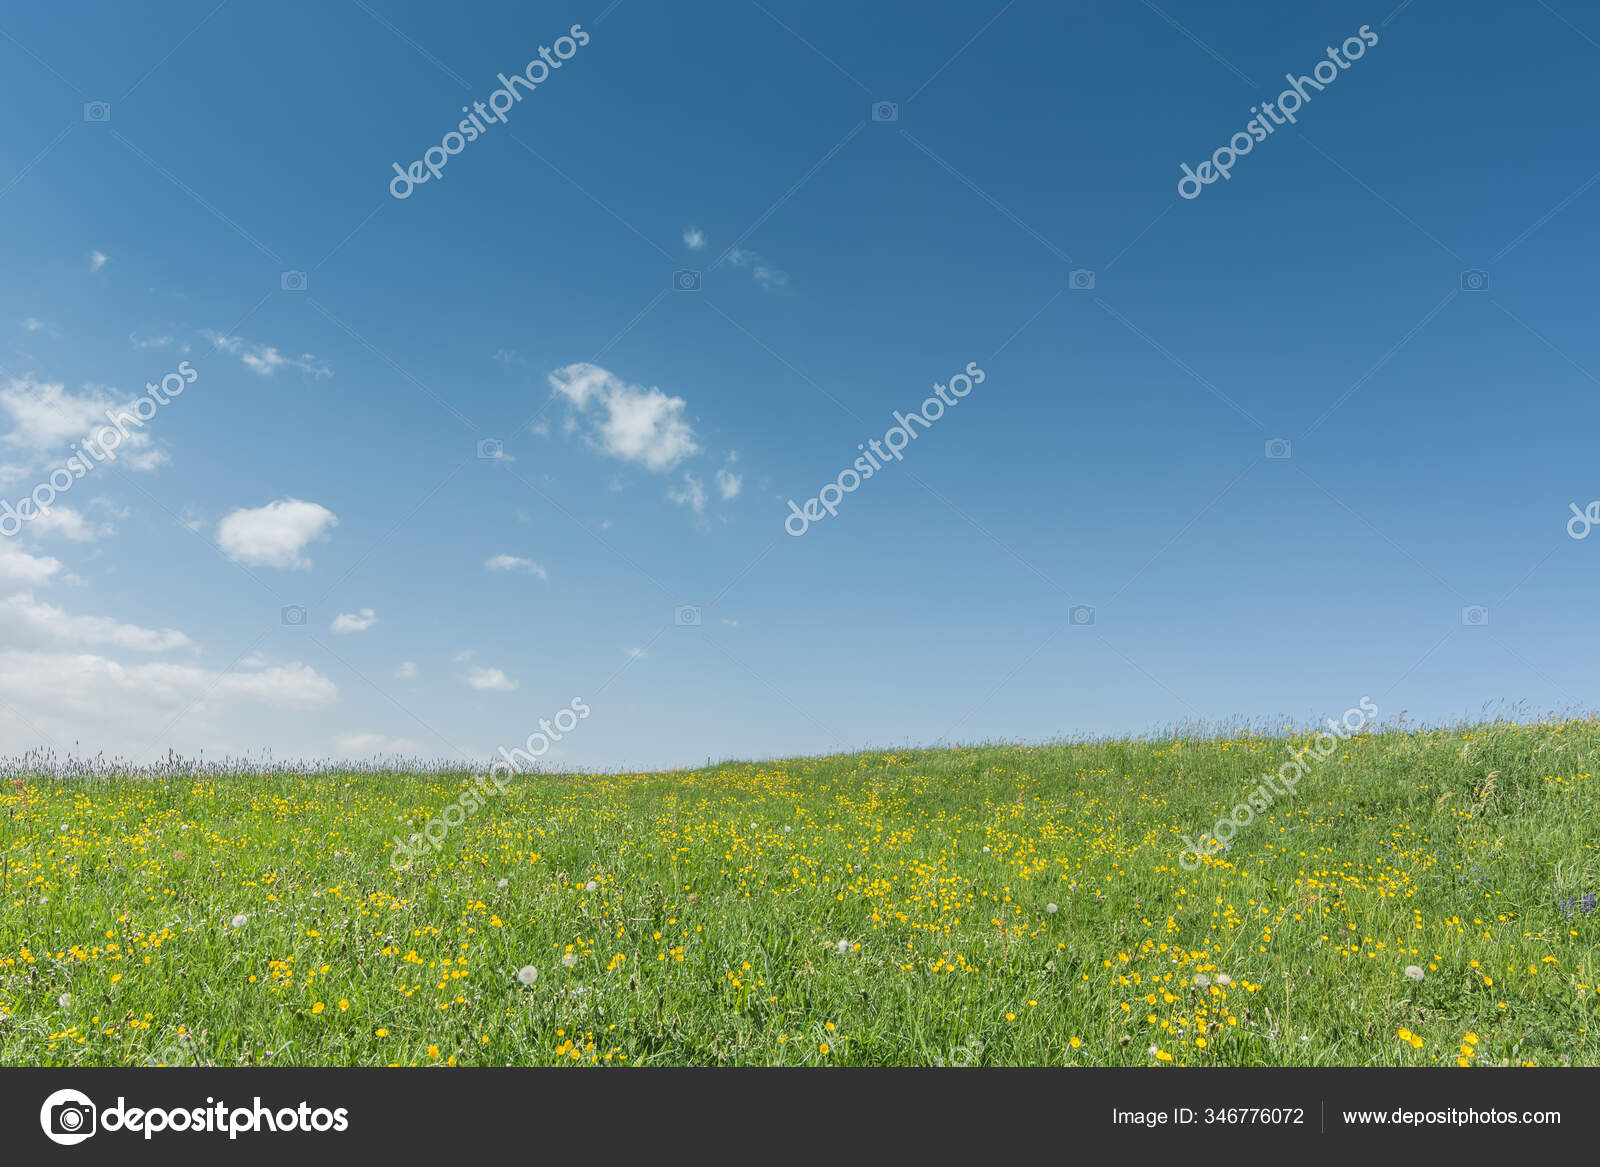 Colorful flower meadow with sky and clouds in spring